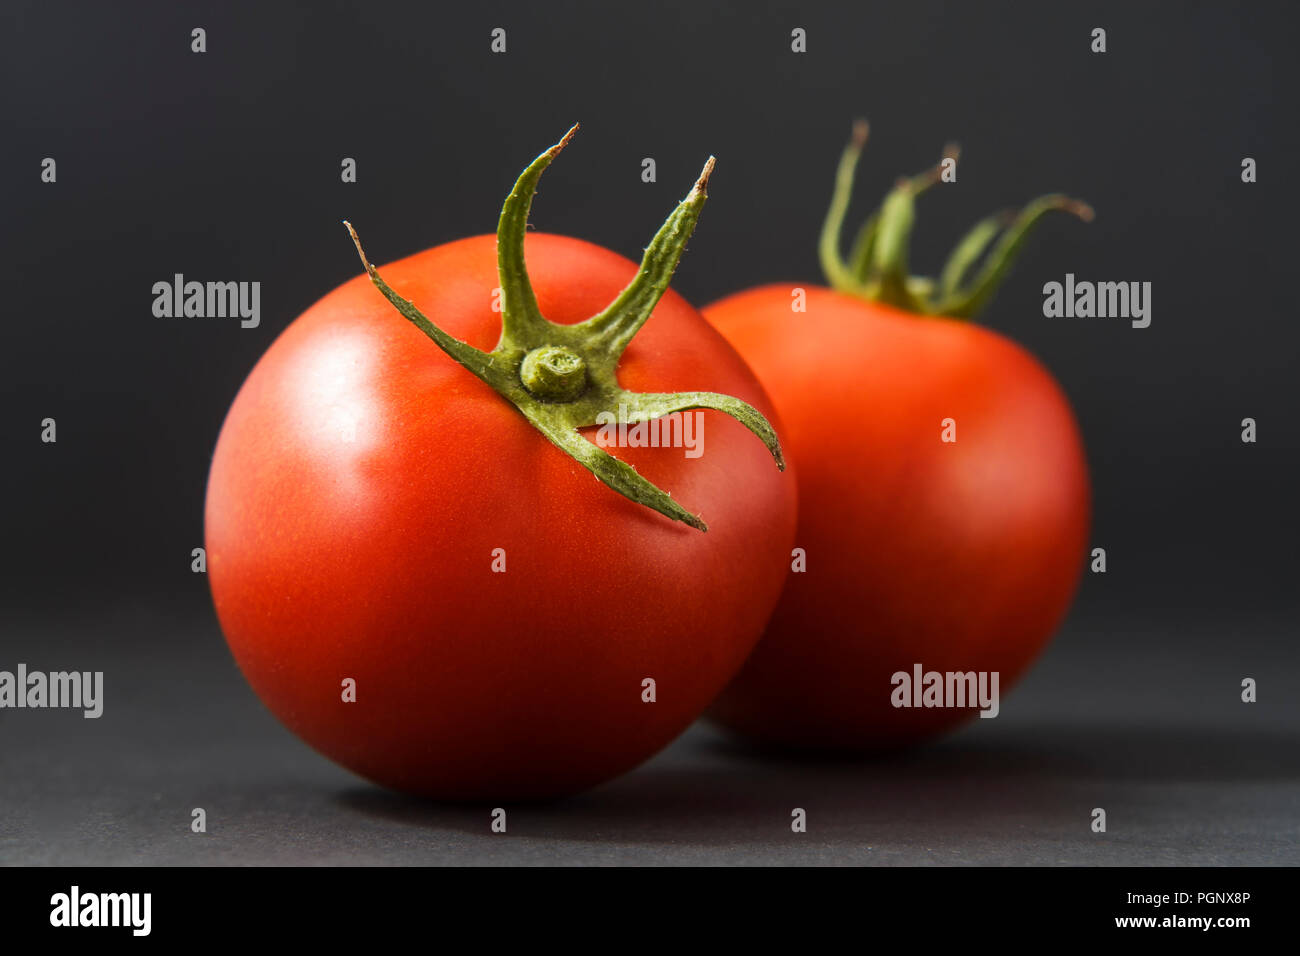 Group of tomatoes isolated on black with leaf and stem. There are around 7,500 tomato varieties grown for various purposes.Tomato varieties can be div Stock Photo